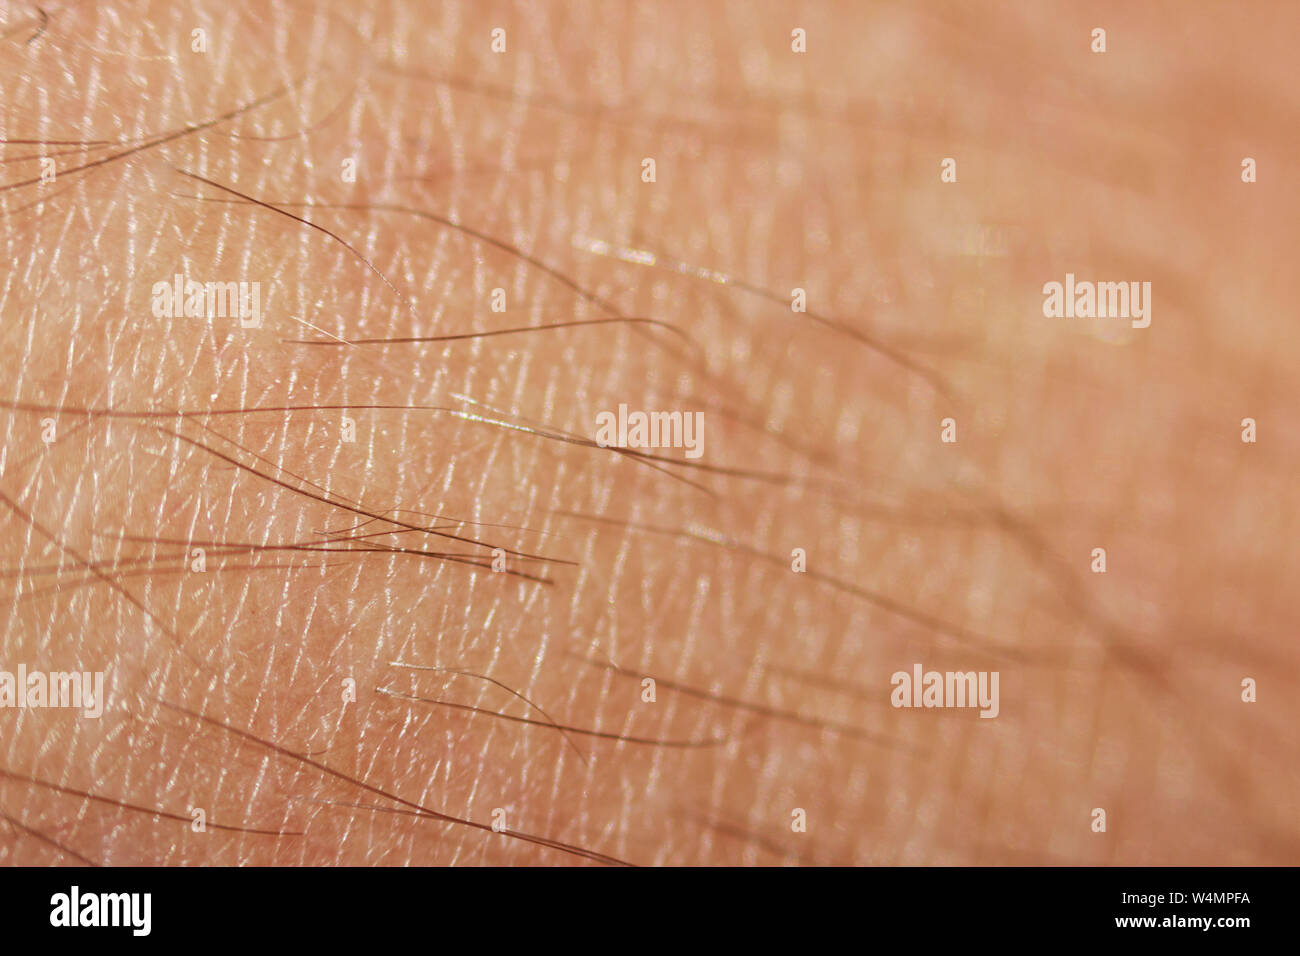 hairy legs before epilation with long black hair. Macro Stock Photo